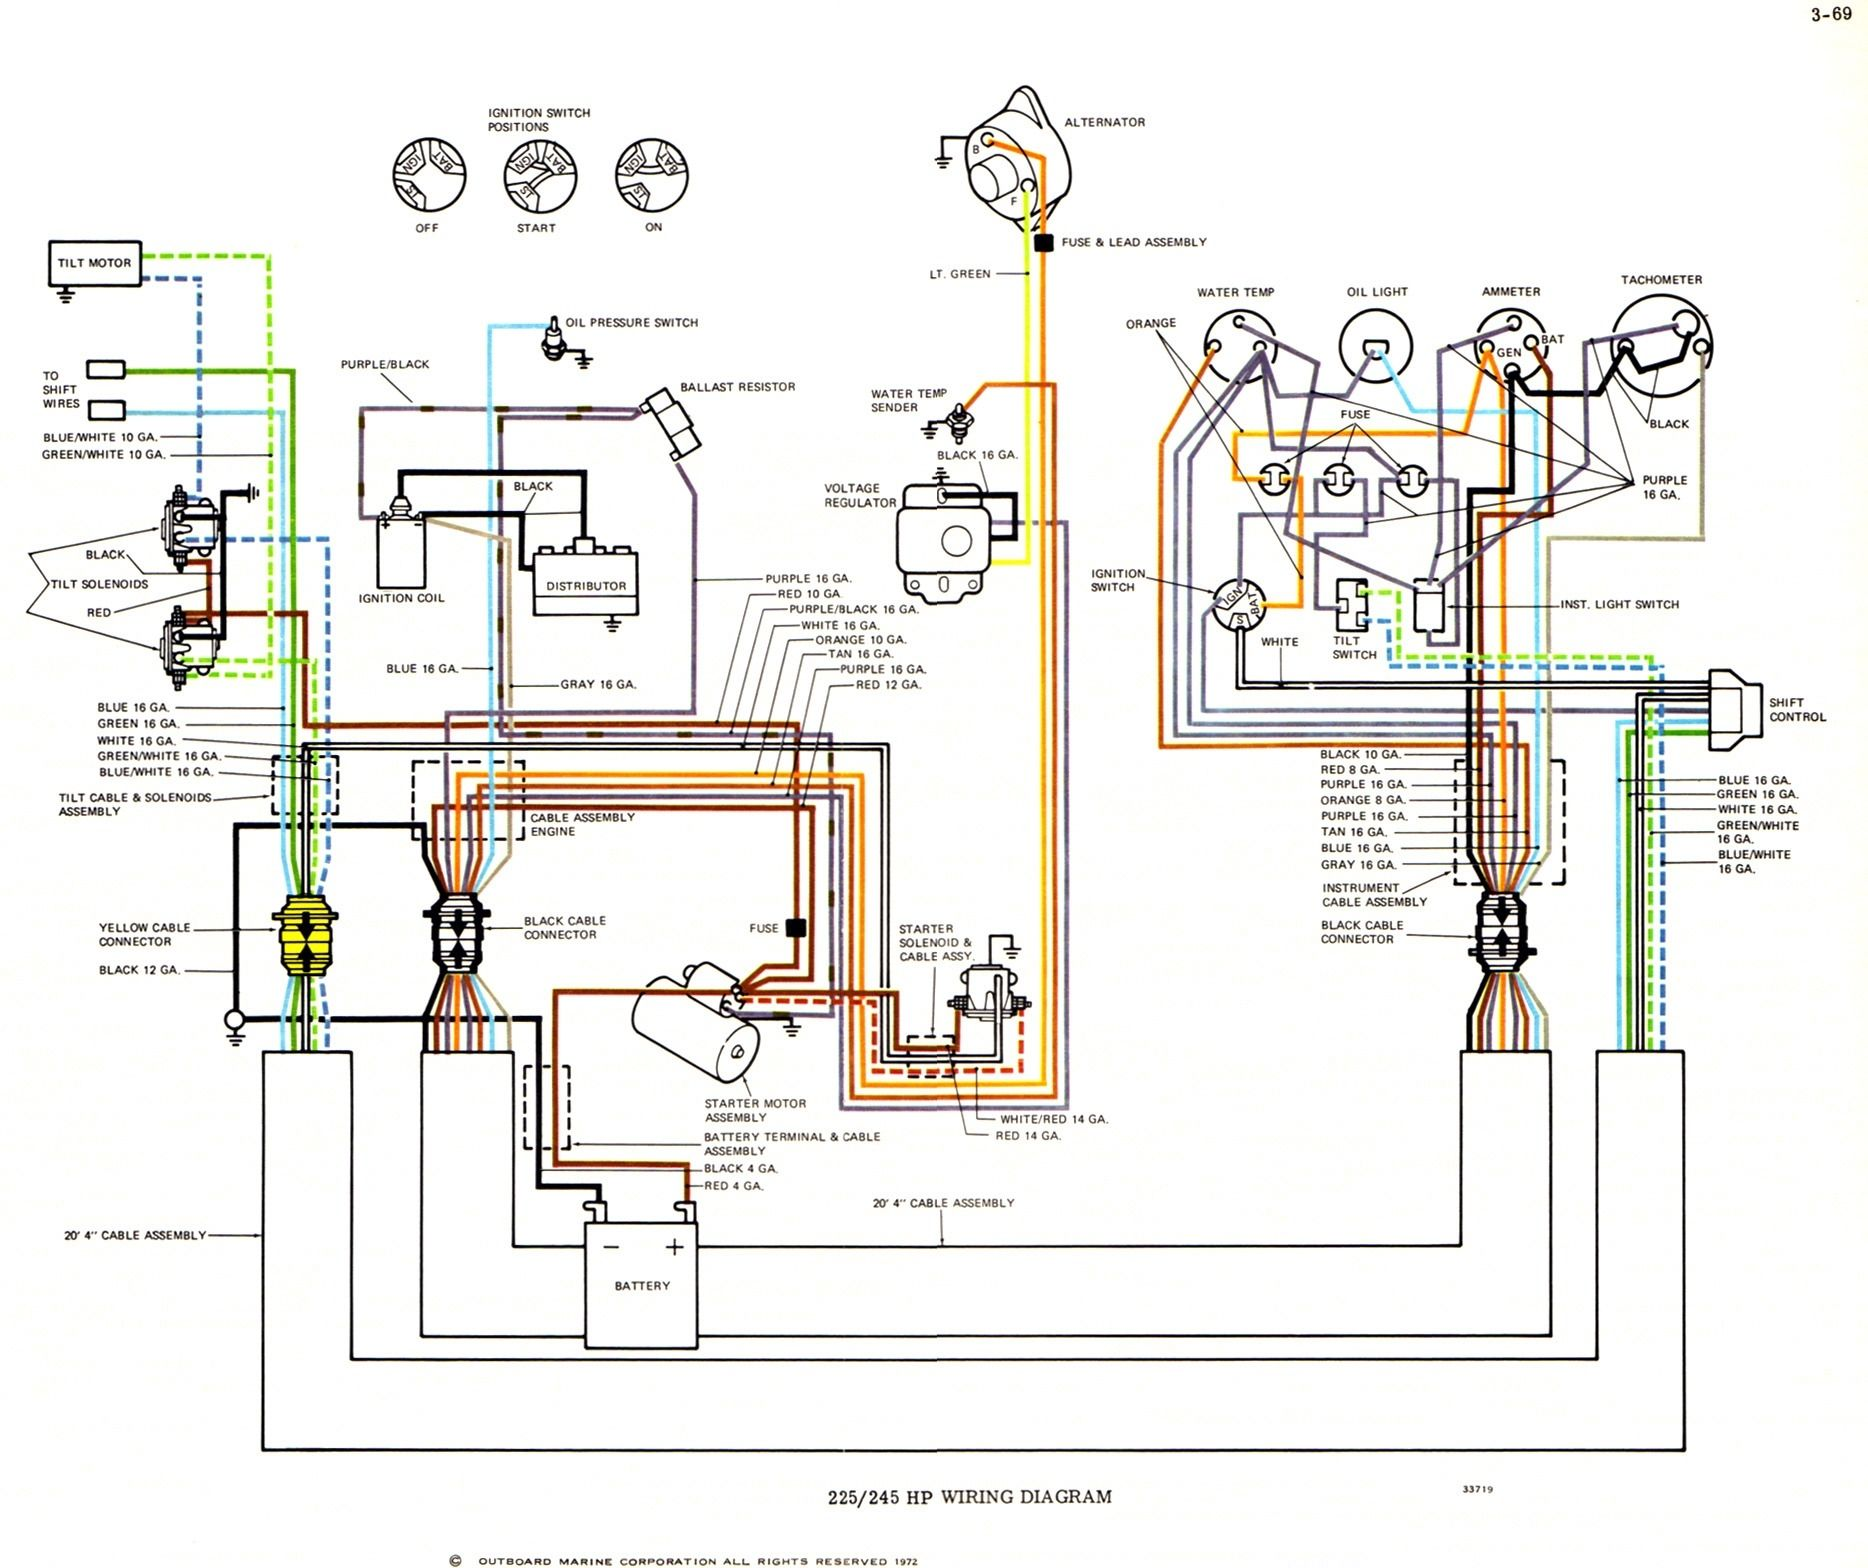 Simple Home Wiring Diagrams